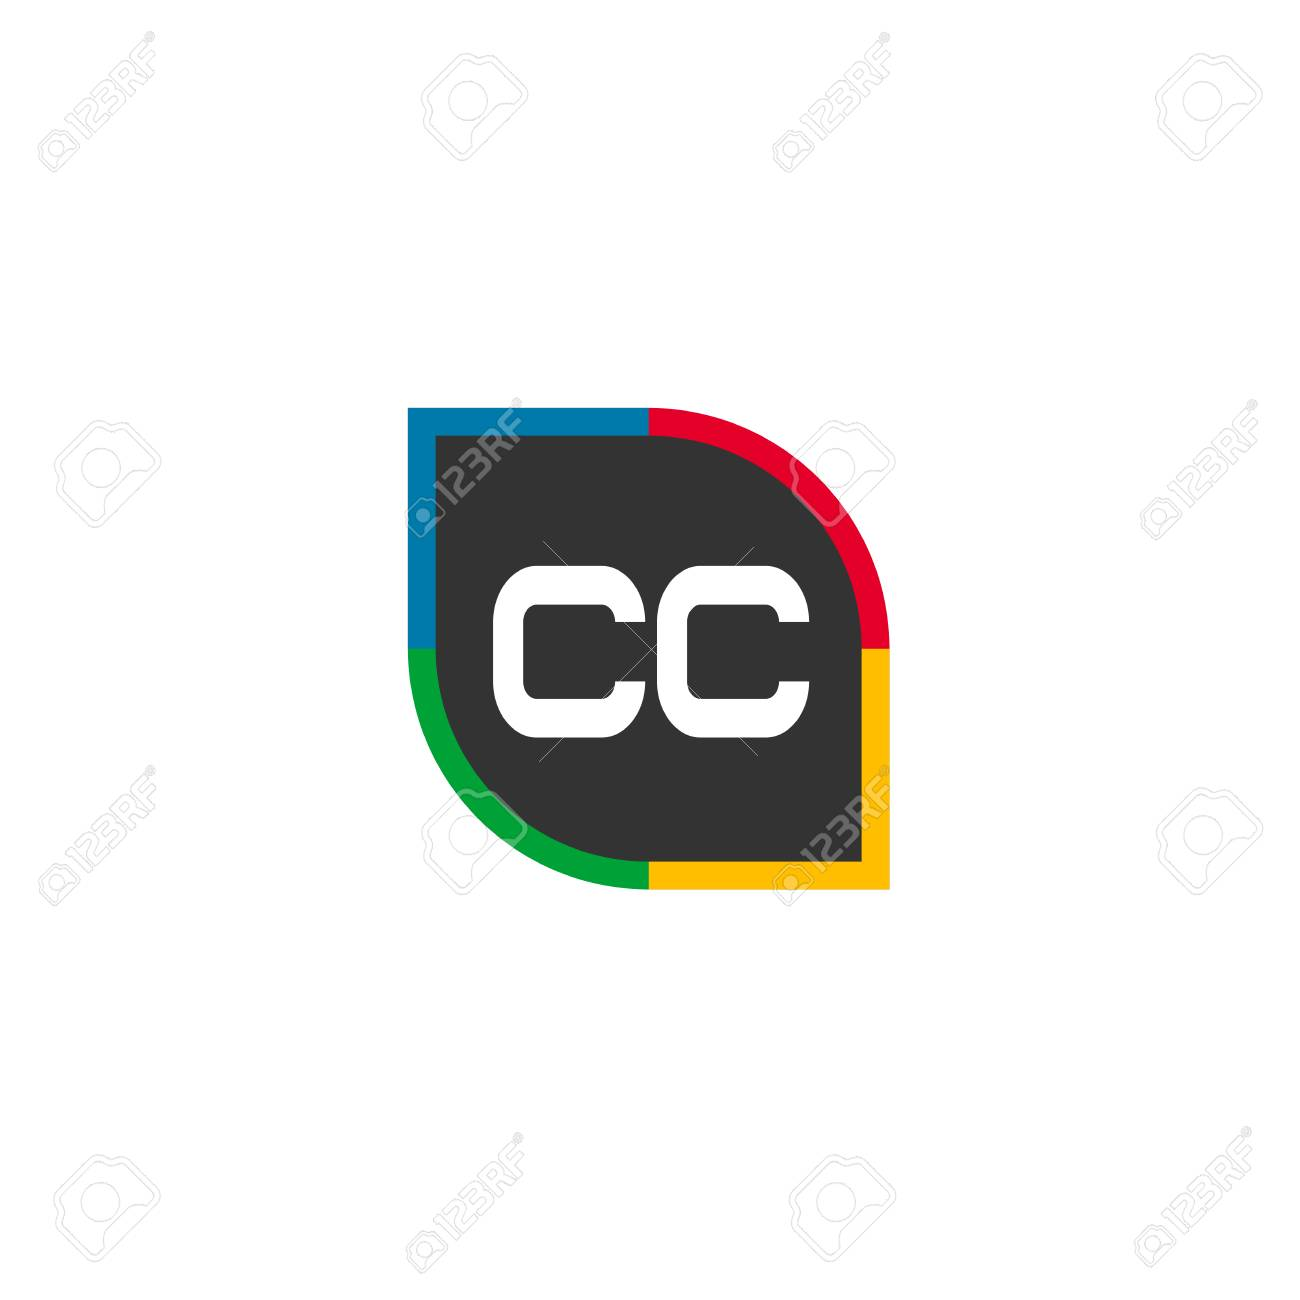 initial letter cc logo template design royalty free cliparts